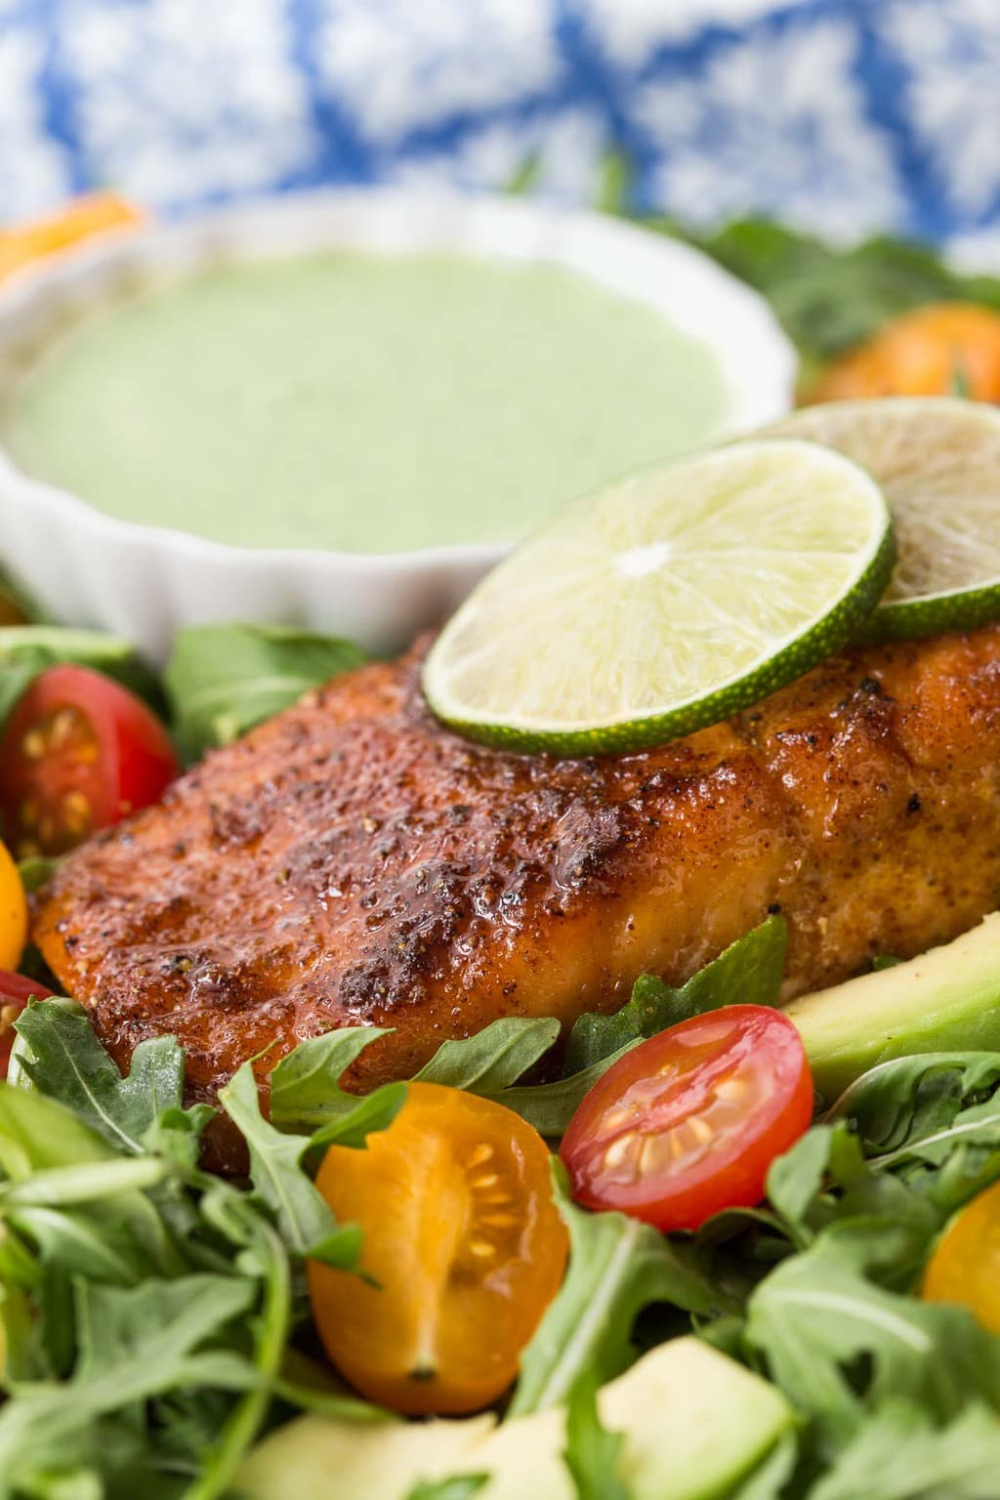 This Mexican Sugar-Seared Salmon Salad is one of our favorite meals ever. Use the easy, healthy salmon recipe in lots of other ways too! #easydinnerideas, #healthydinners, #salmon #immuneboostingfood